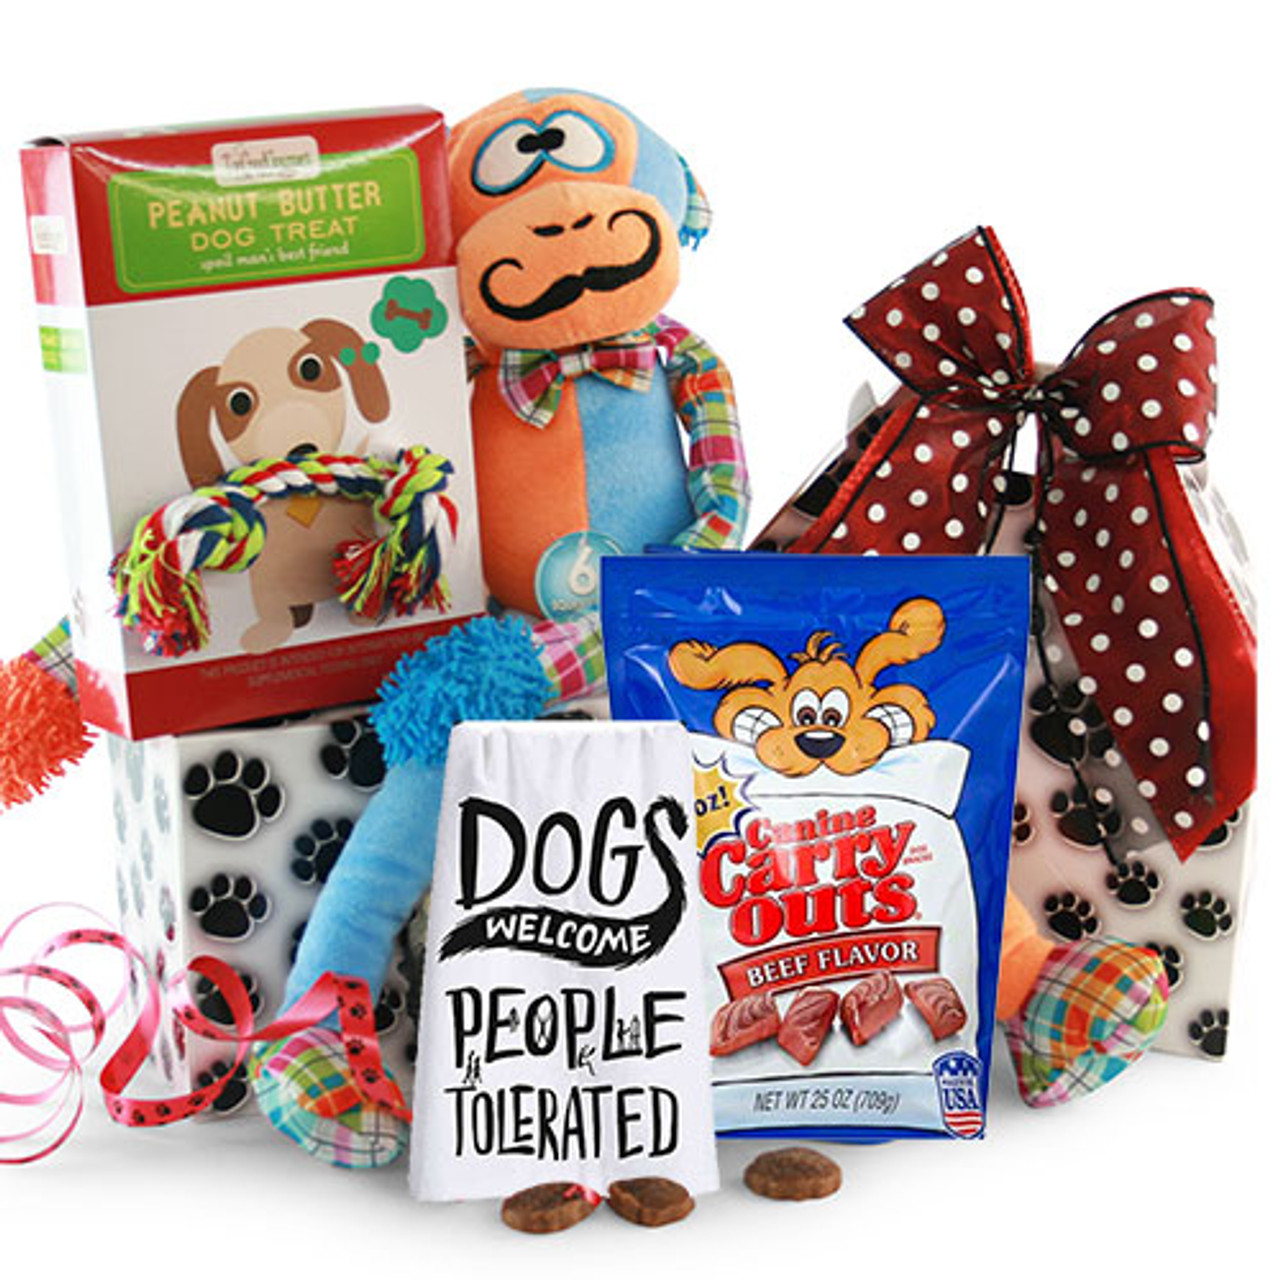 For the Love of Dogs: Pet Dog Gift Basket